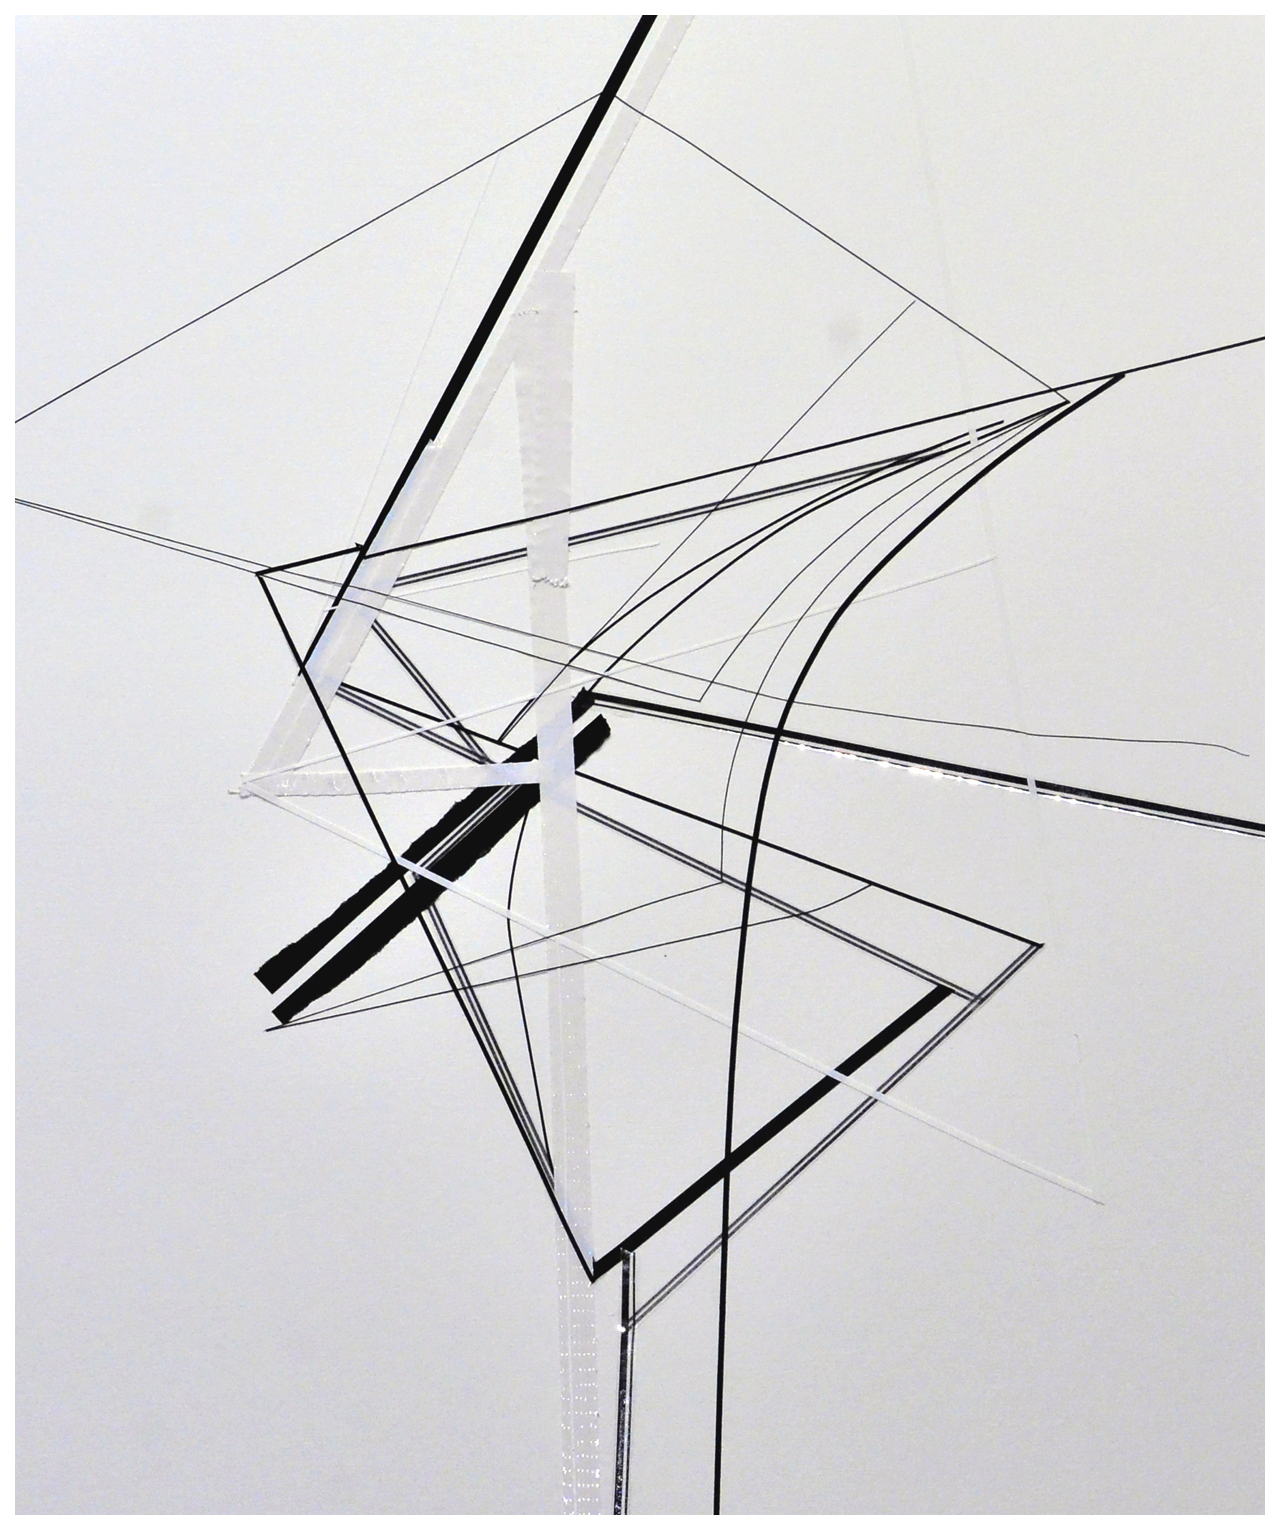 Untitled no.19 Symplectic structures